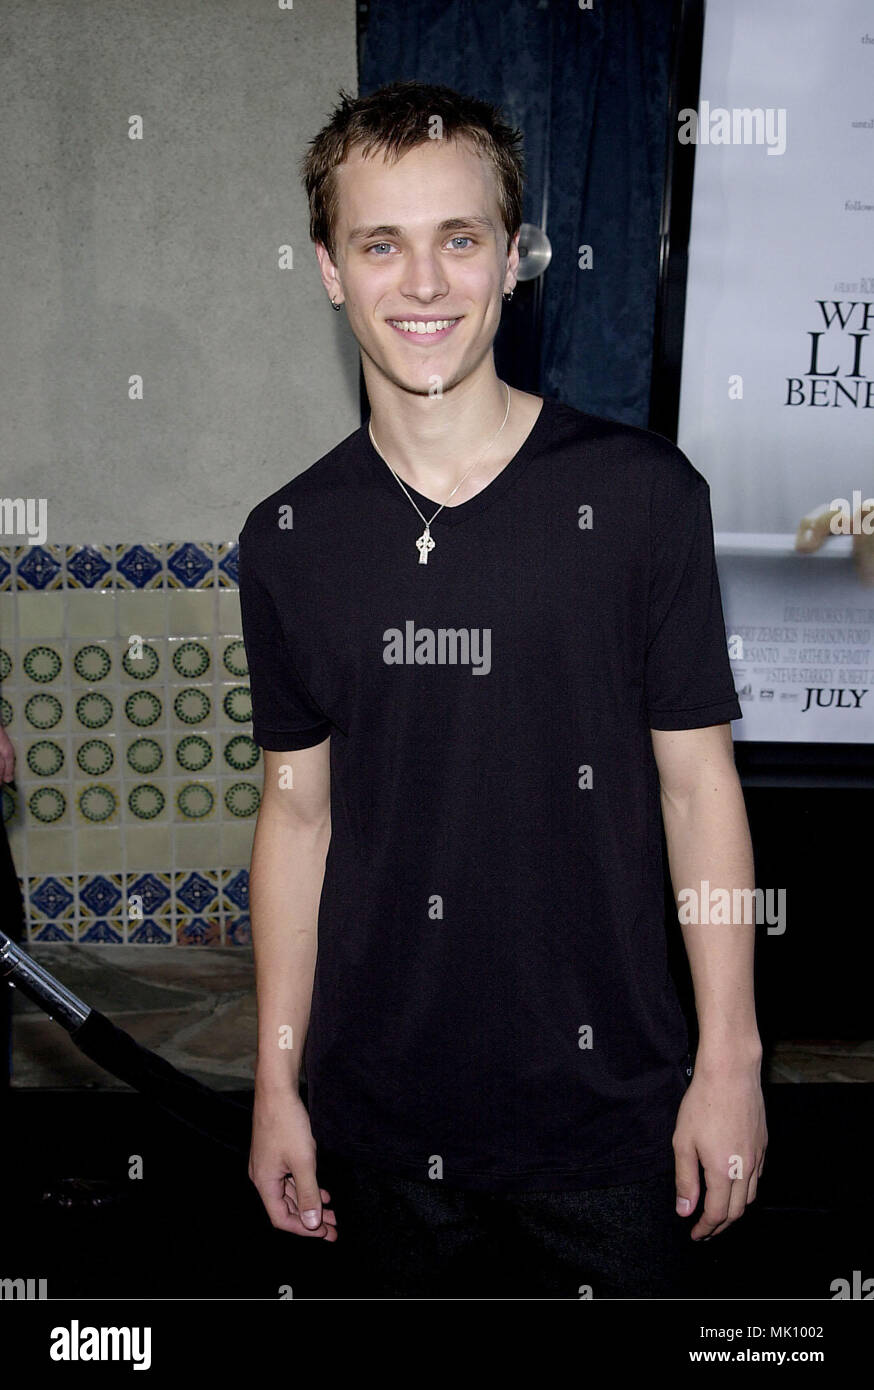 Jonathan Jackson Red Carpet Event High Resolution Stock Photography And Images Alamy